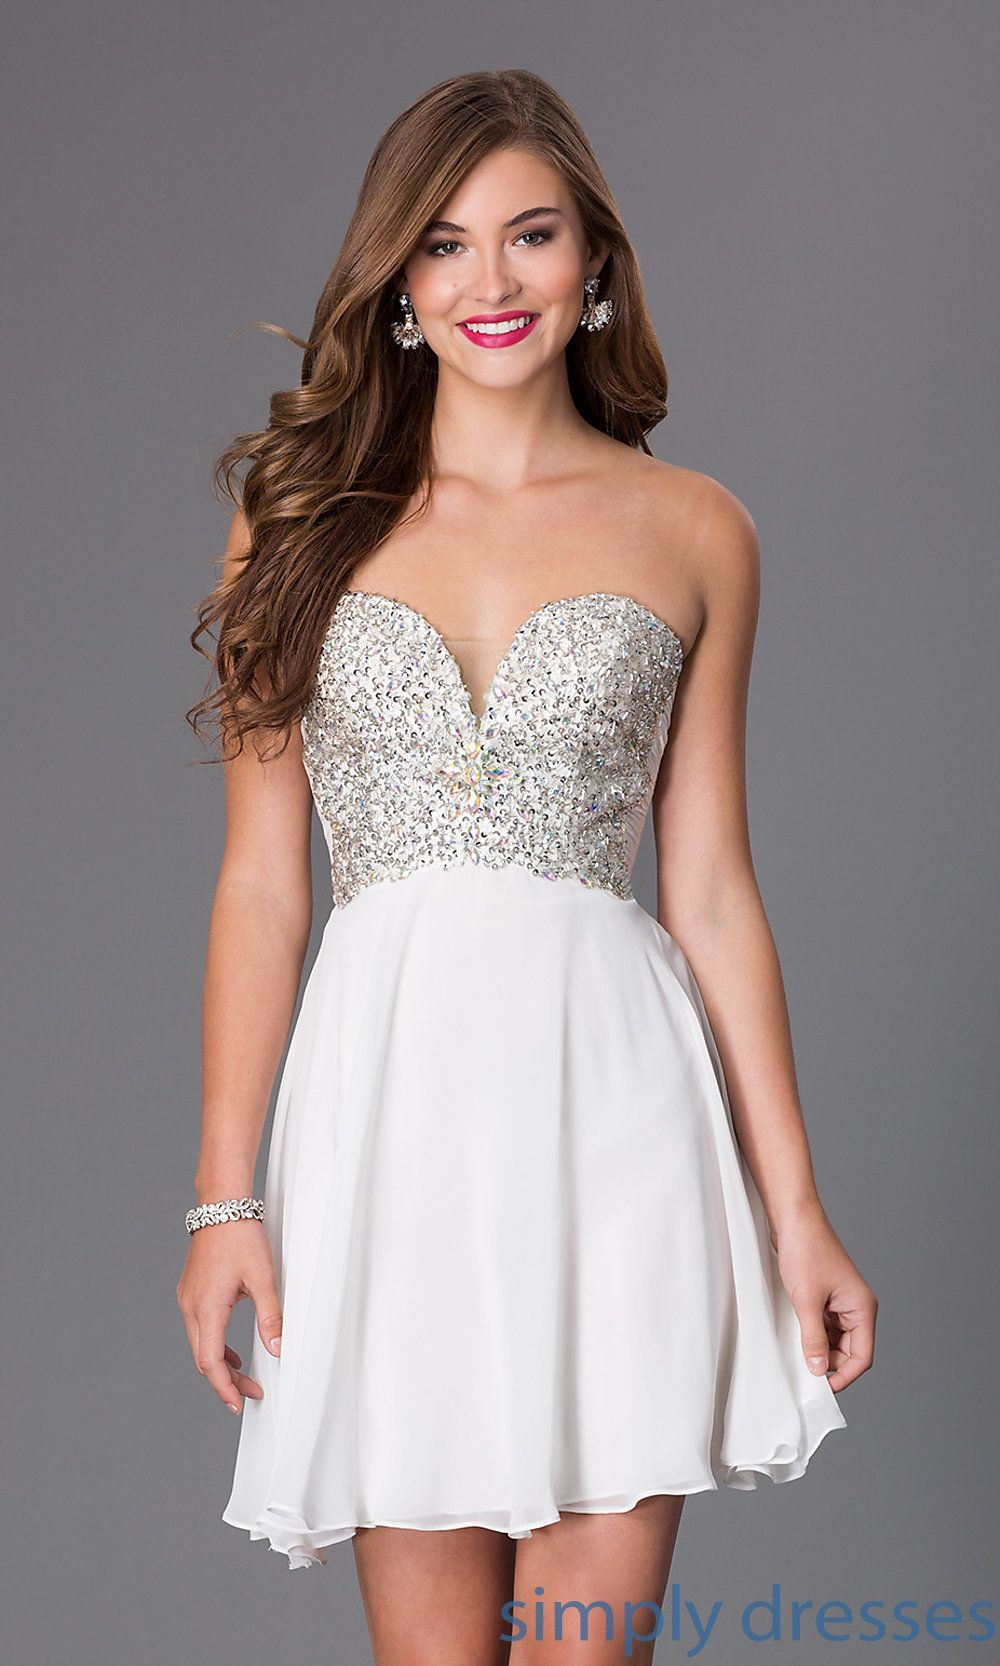 Short strapless sweetheart dress by swing ssd dressesoutfits